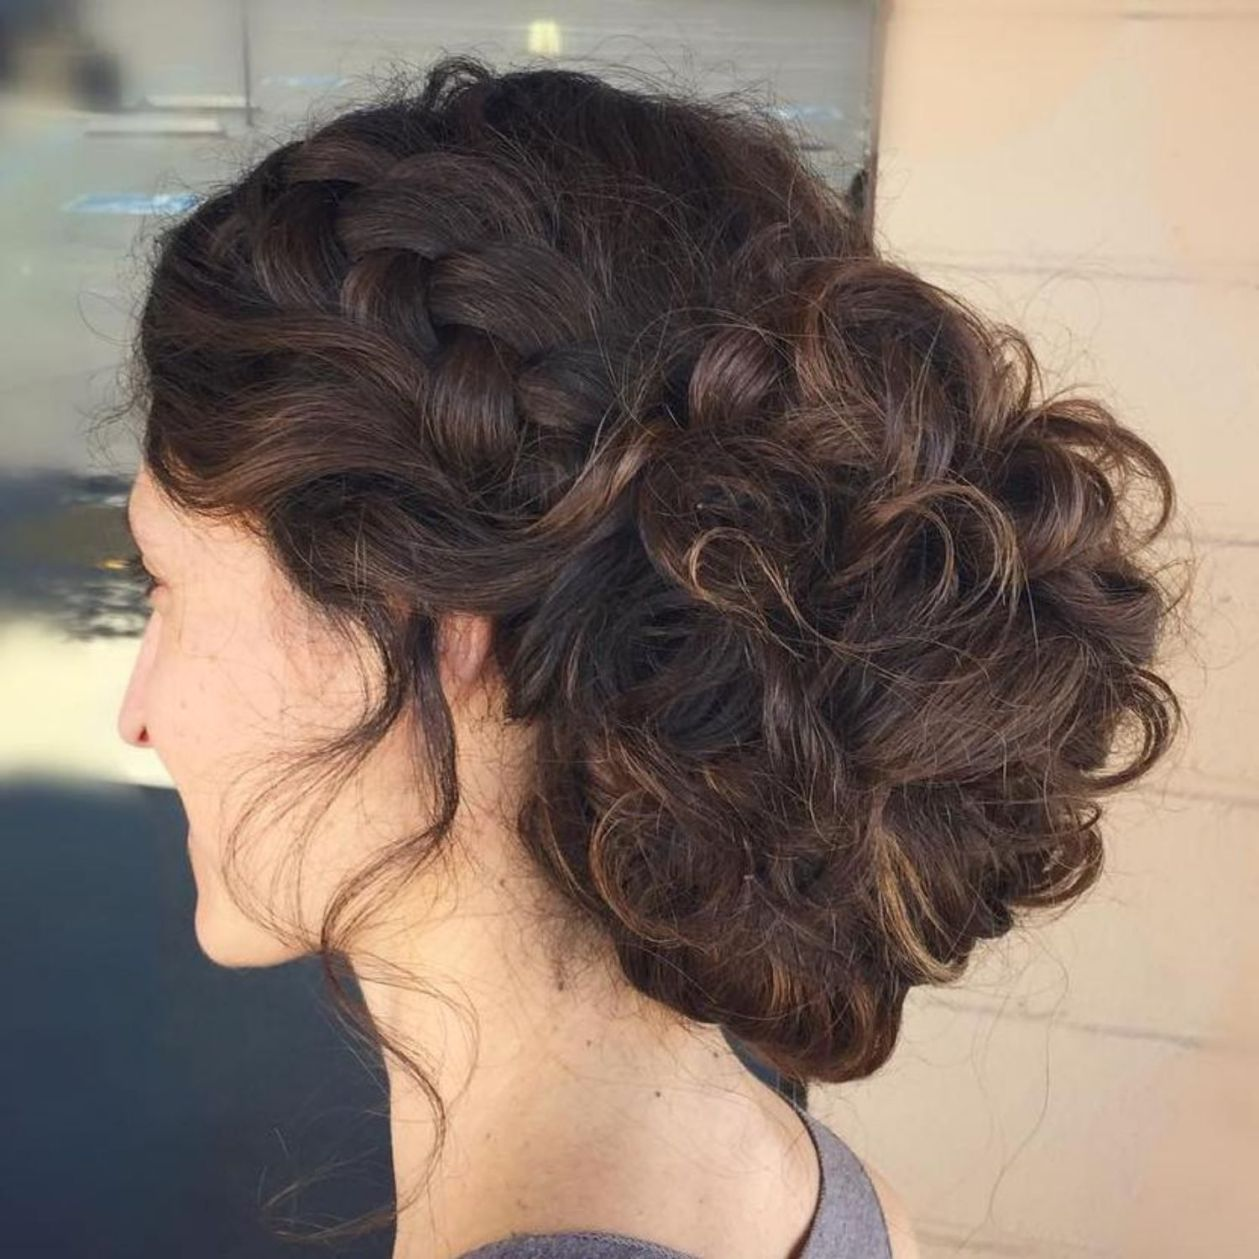 40 creative updos for curly hair in 2019 | wedding planning